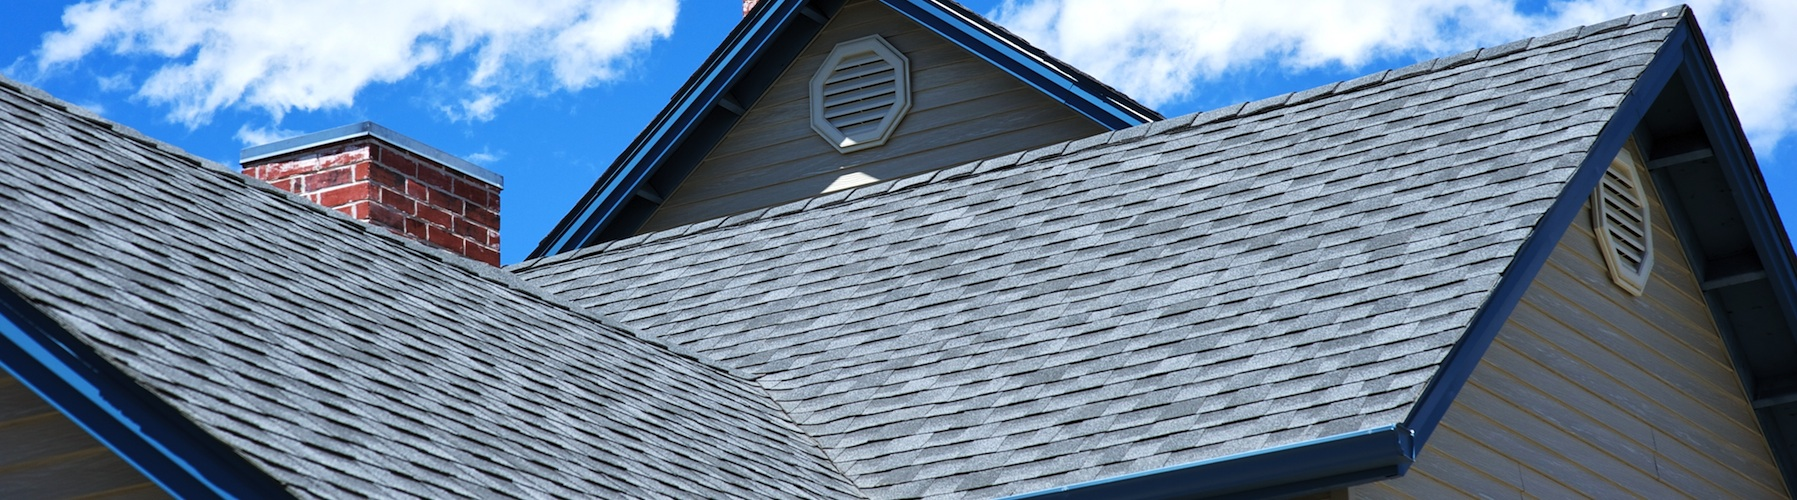 Roofing-Repair-in-North-Texas